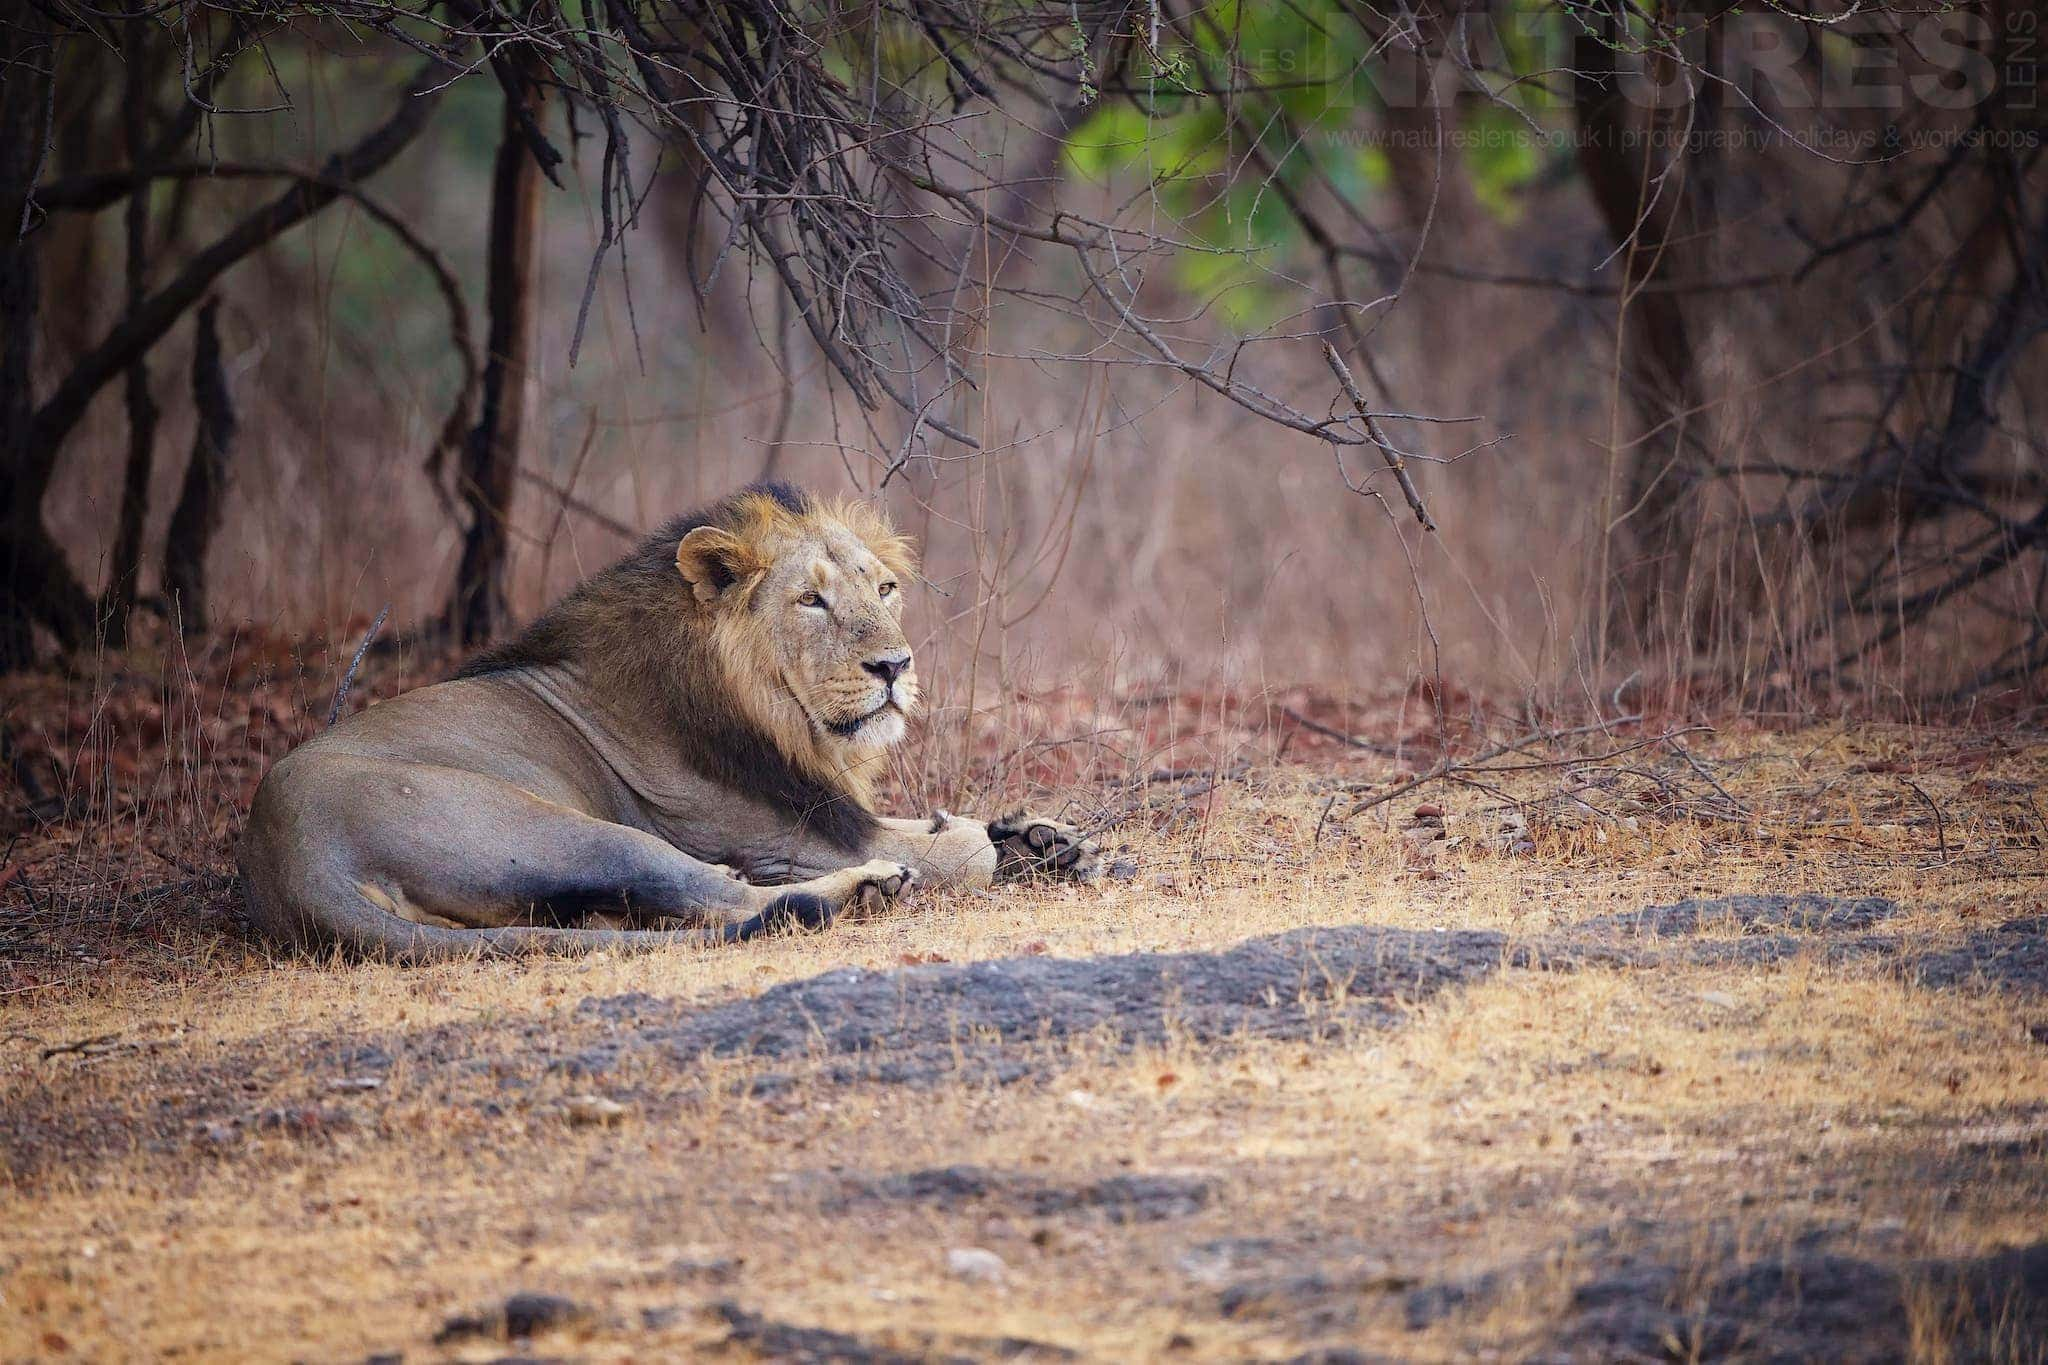 Male lion resting in the forest as captured during the Lions of Gir photography tour as led by NaturesLens